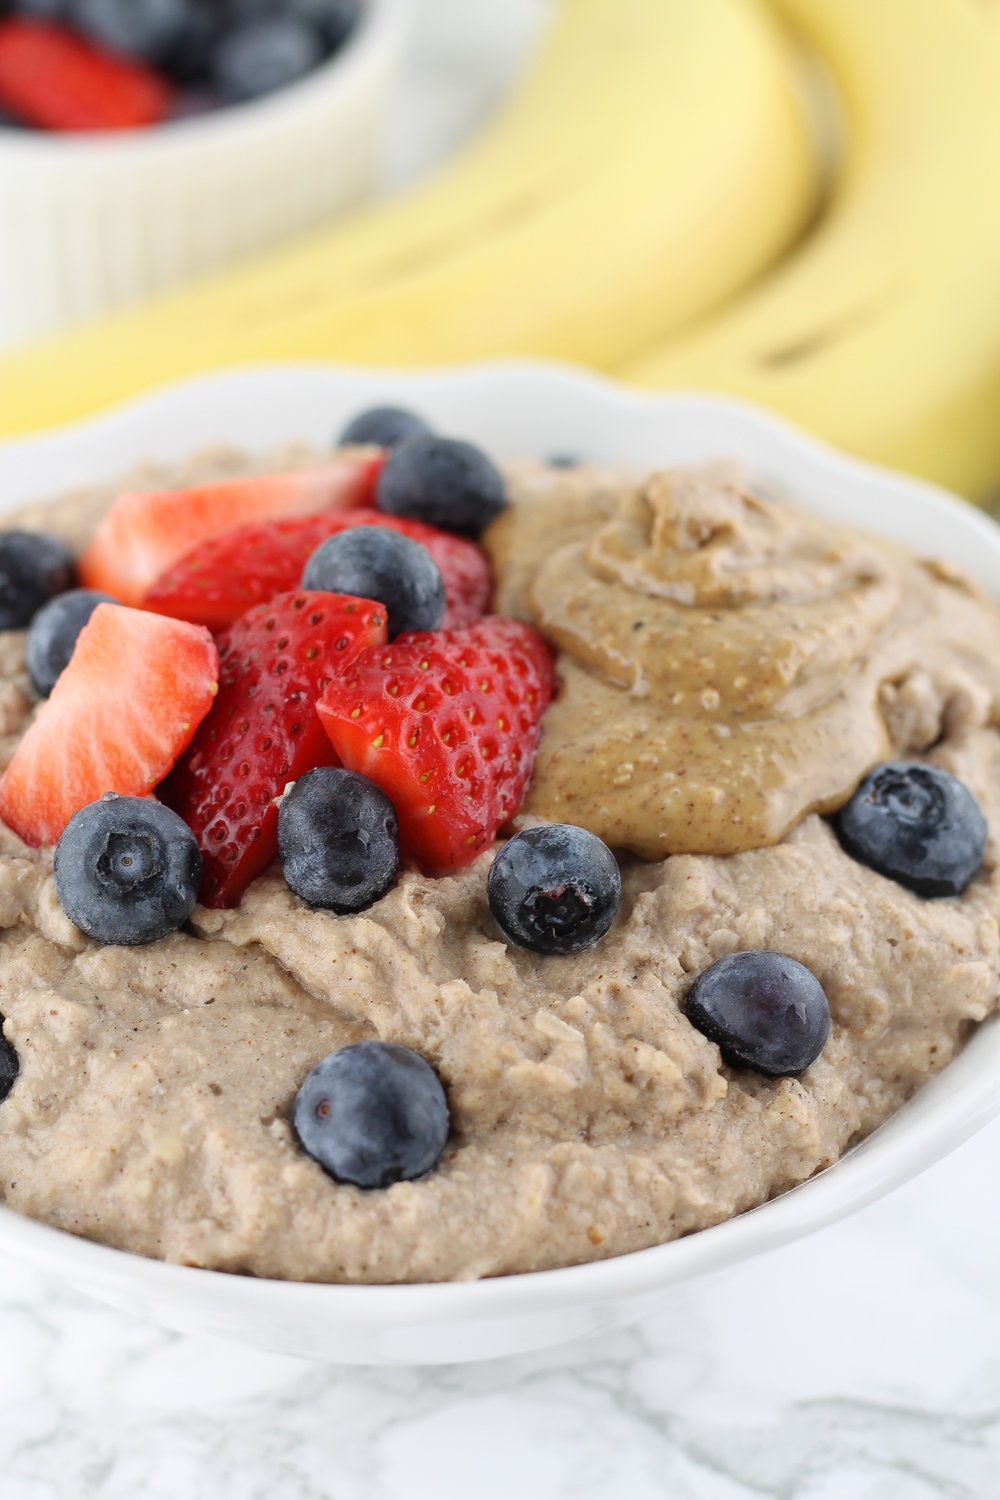 paleo recipes, paleo breakfast, real food, easy recipes, healthy, quick, simple, 21dsd, definefettle, grain free, gluten free,